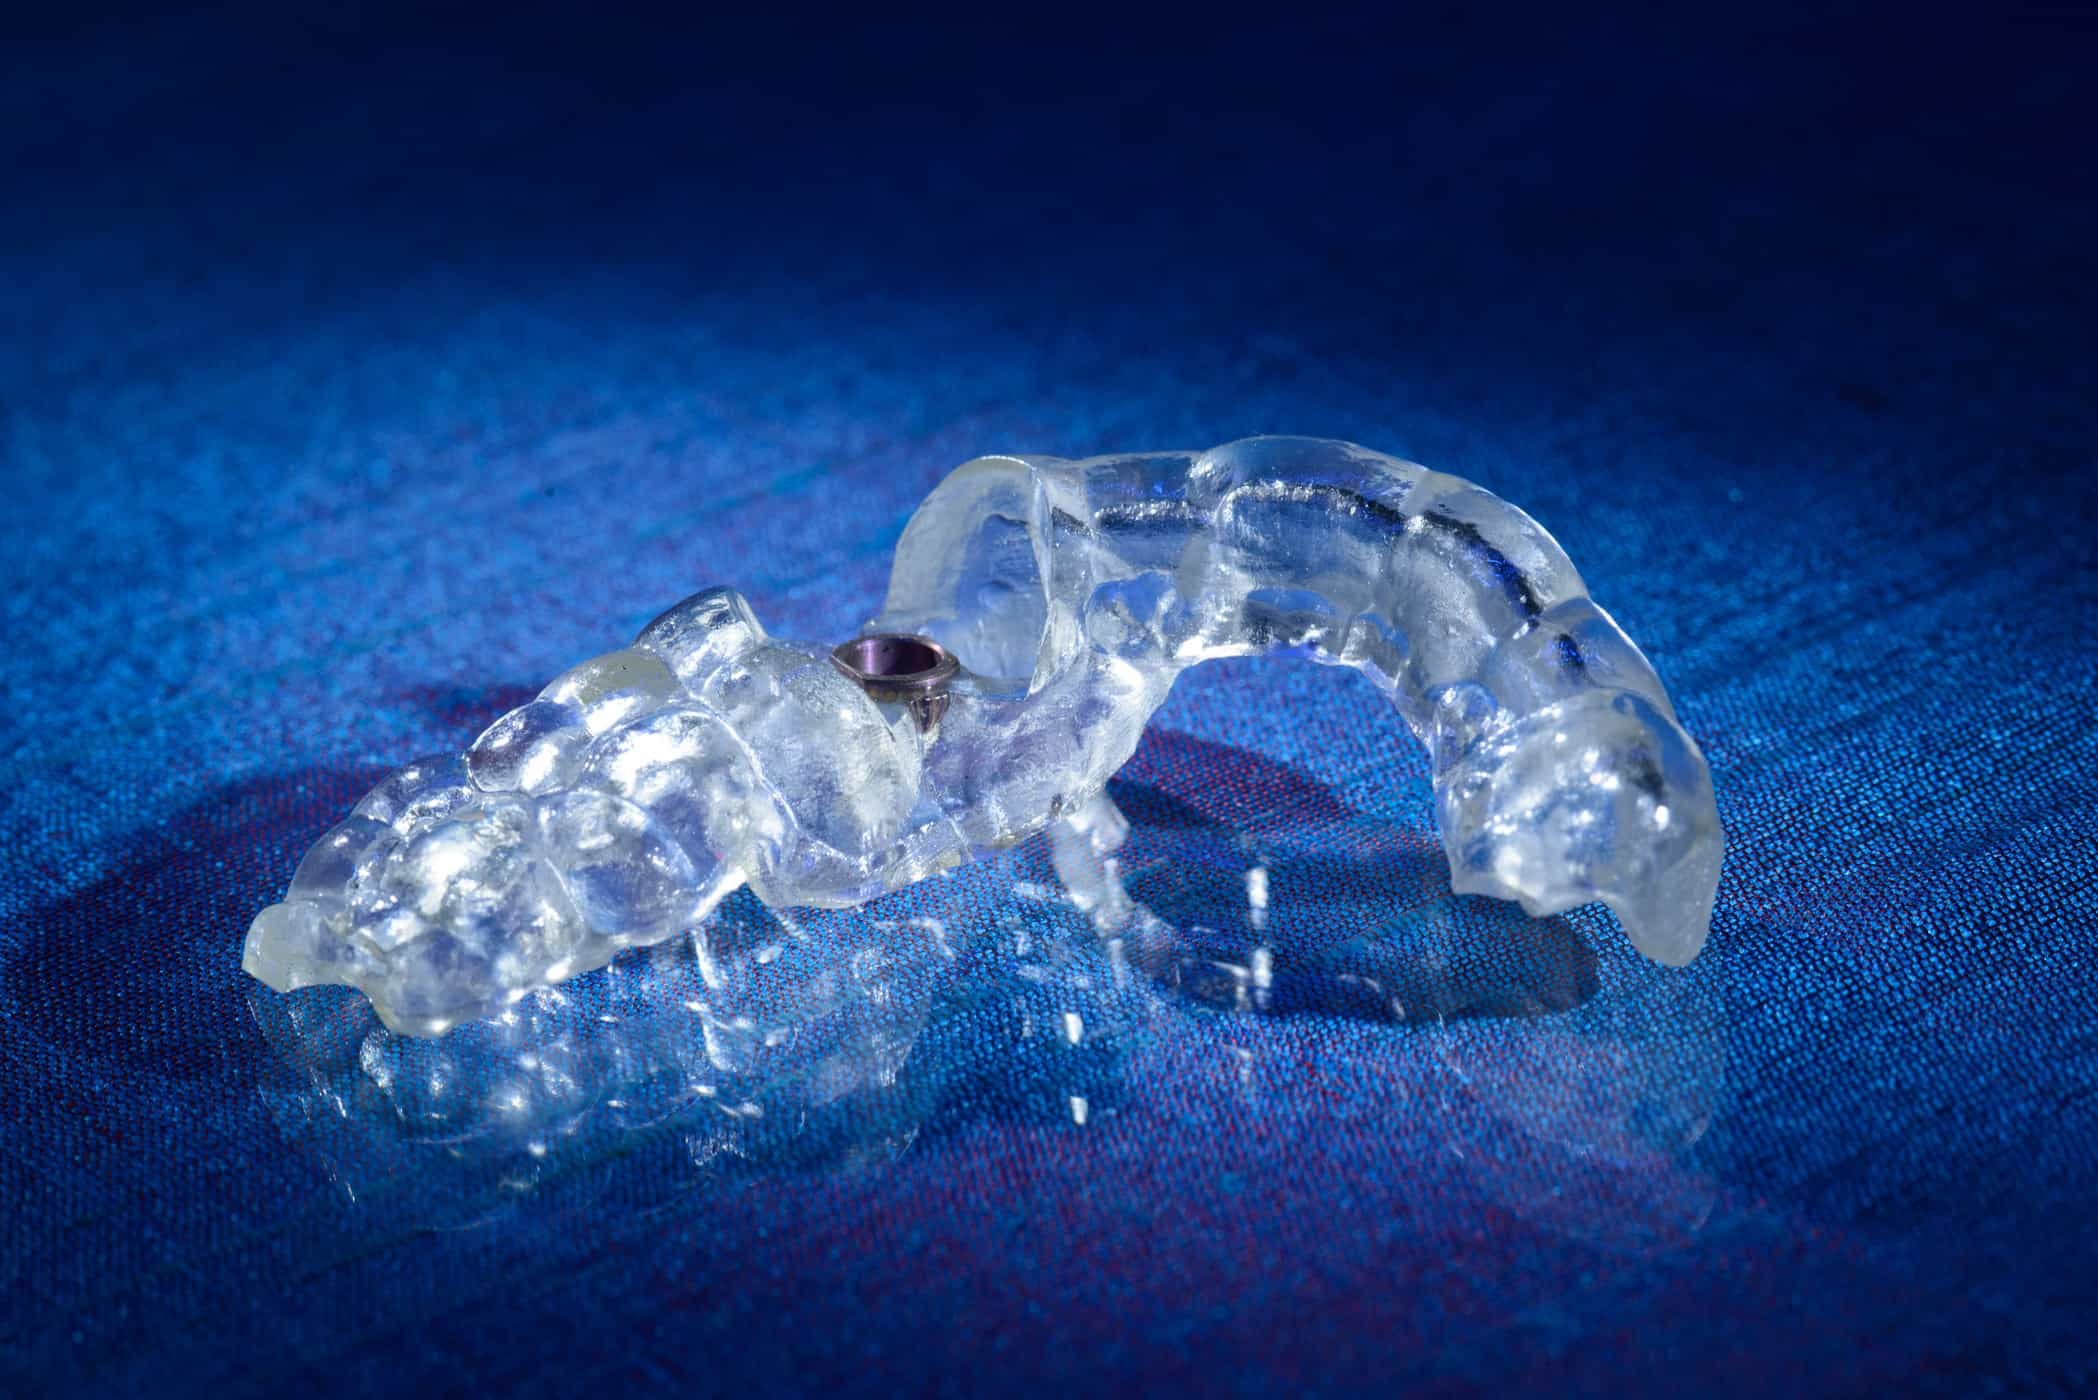 Guided Surgery Appliance created by Burbank Dental Lab